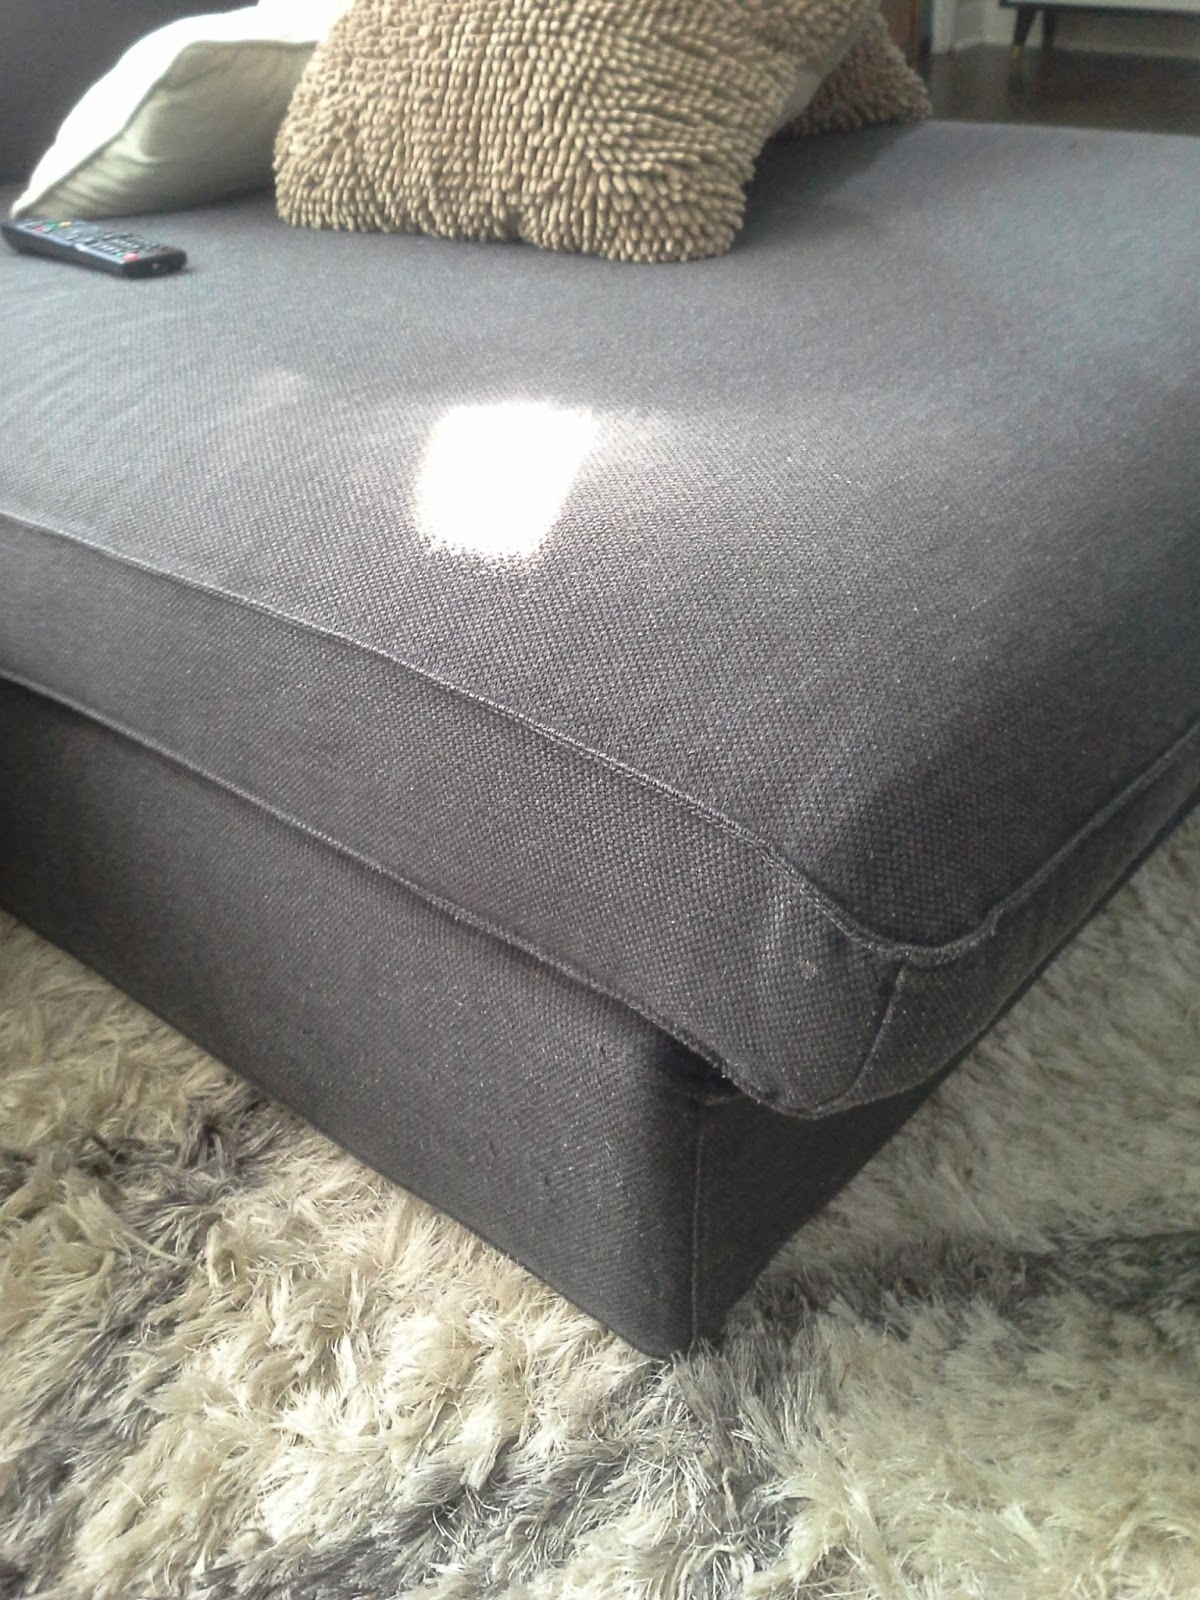 Lilly's Home Designs: Ikea Kivik Review For Most Recent Kivik Chaises (View 12 of 15)